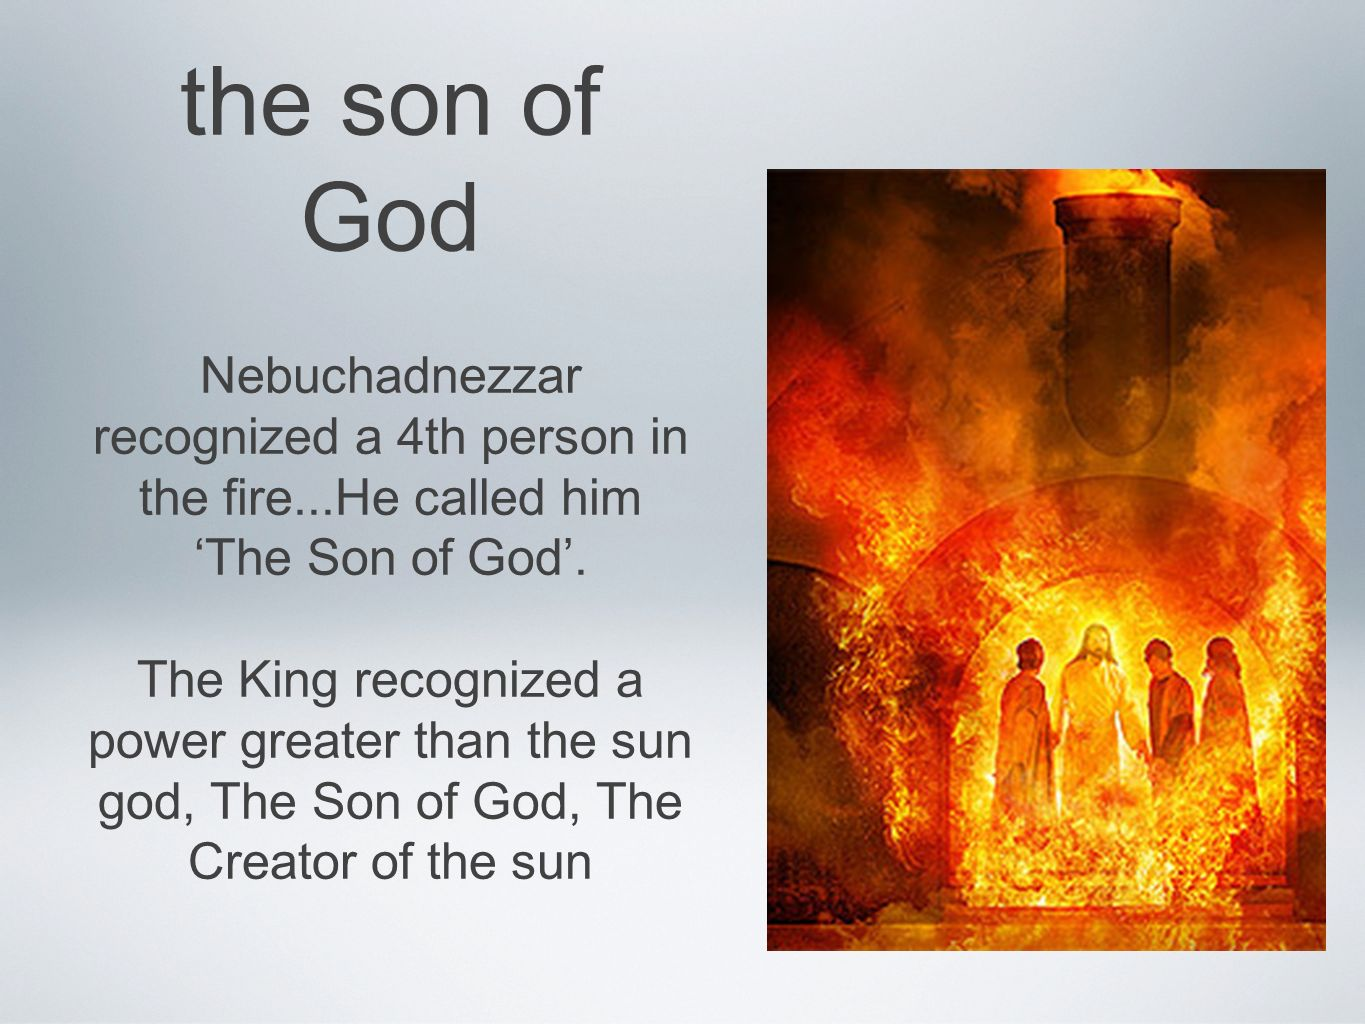 the son of God Nebuchadnezzar recognized a 4th person in the fire...He called him The Son of God.